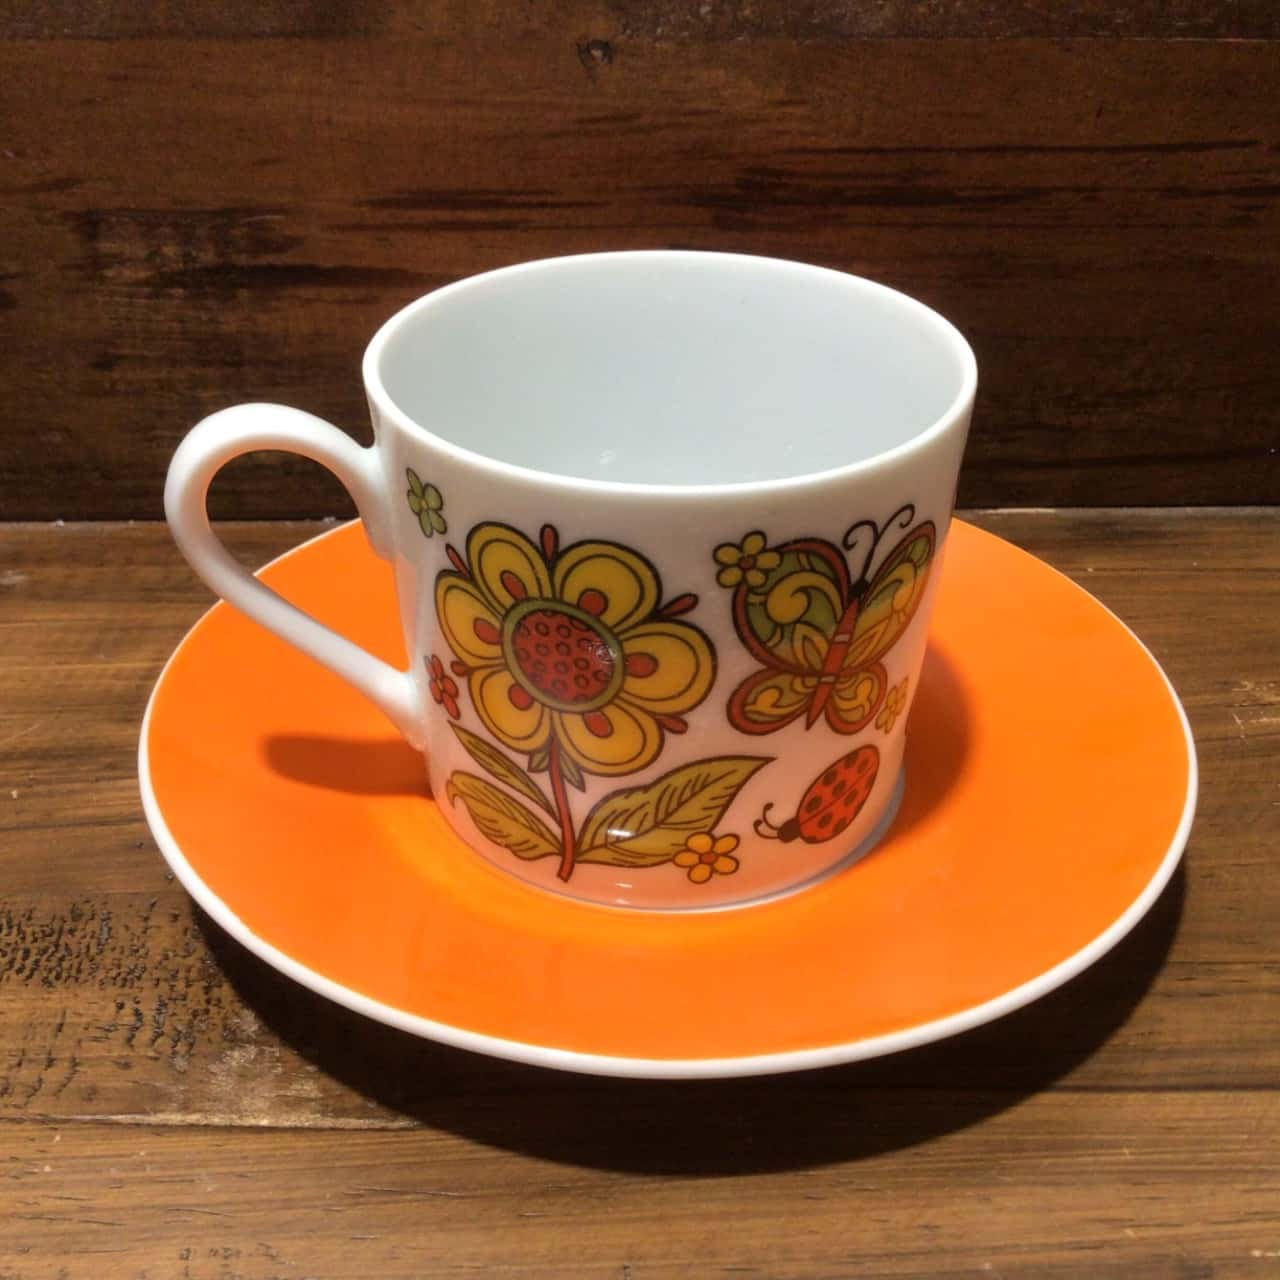 VINTAGE RETRO SET OF 6 CUPS & SAUCERS with FUNKY SUNFLOWER DESIGN